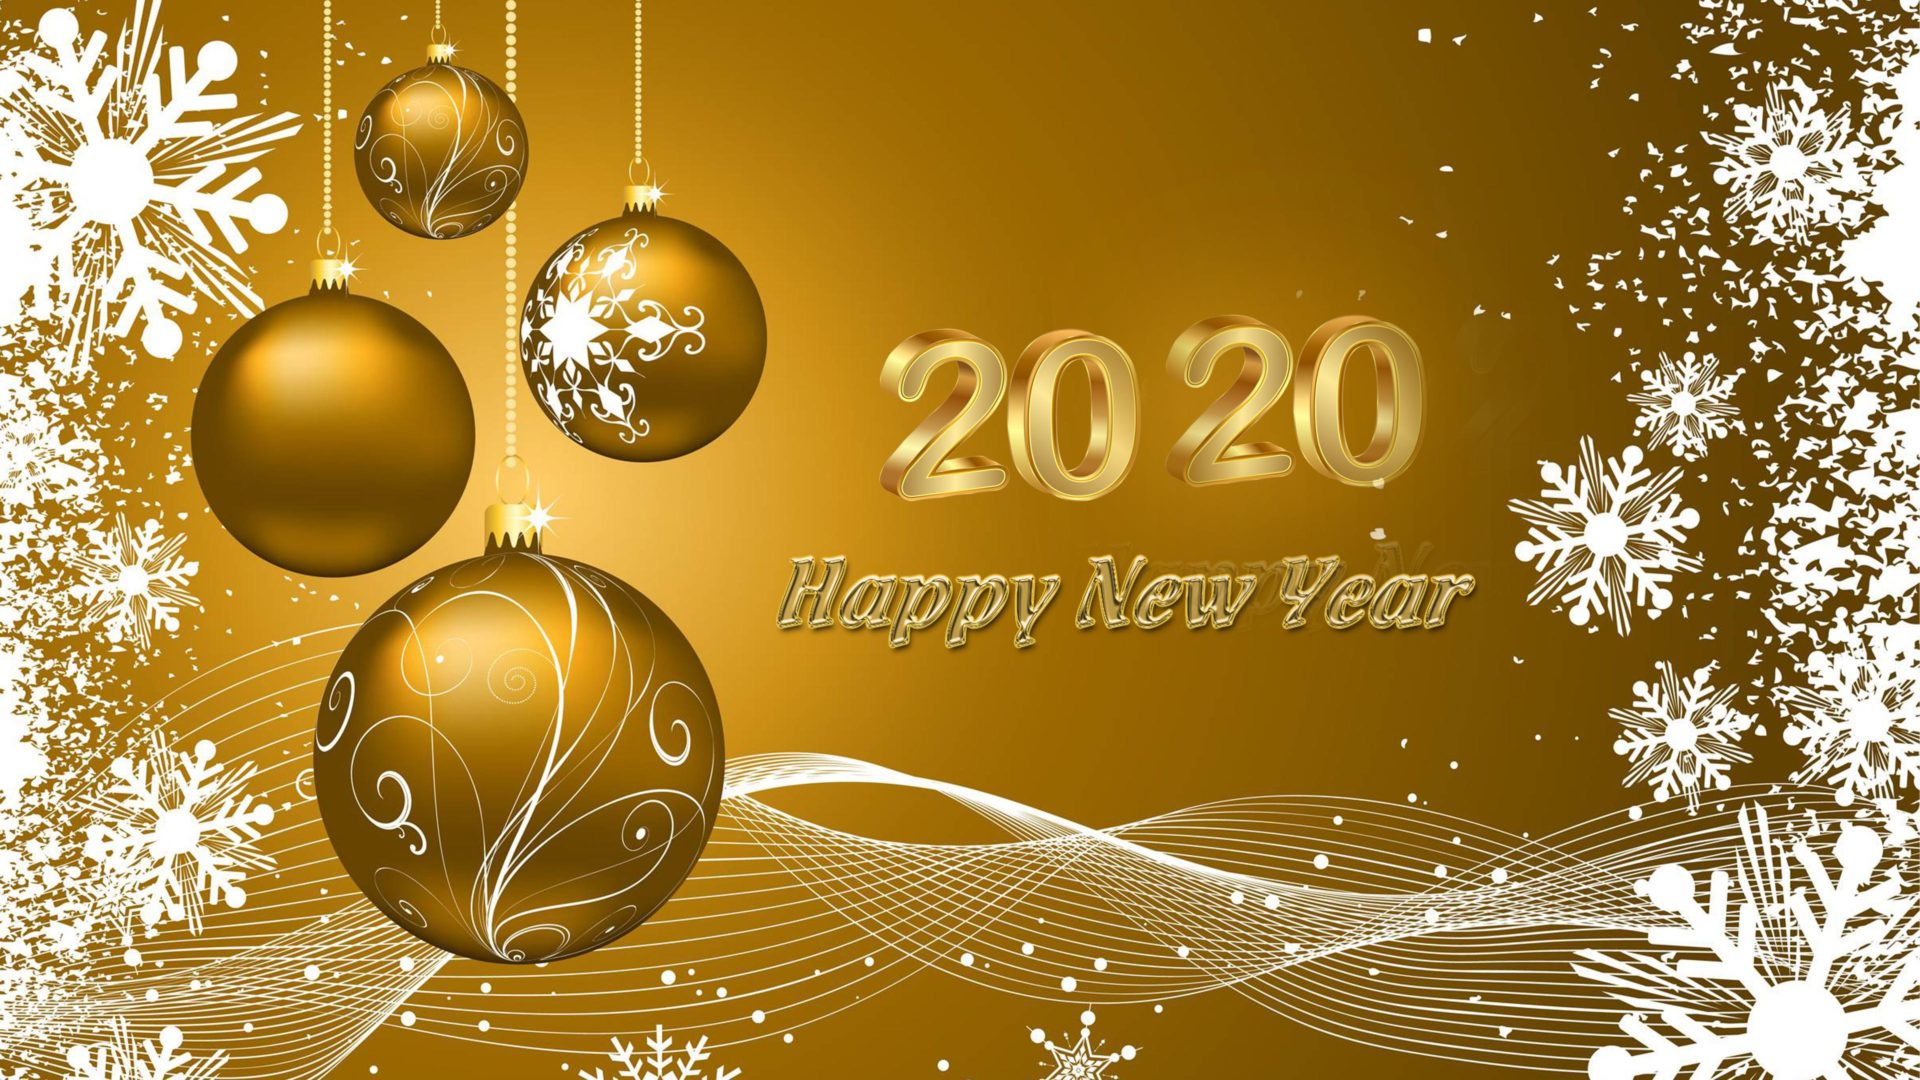 Happy New 2020 Year Wishes Gold Greeting Card Quotes 4k Ultrahd 1920x1080